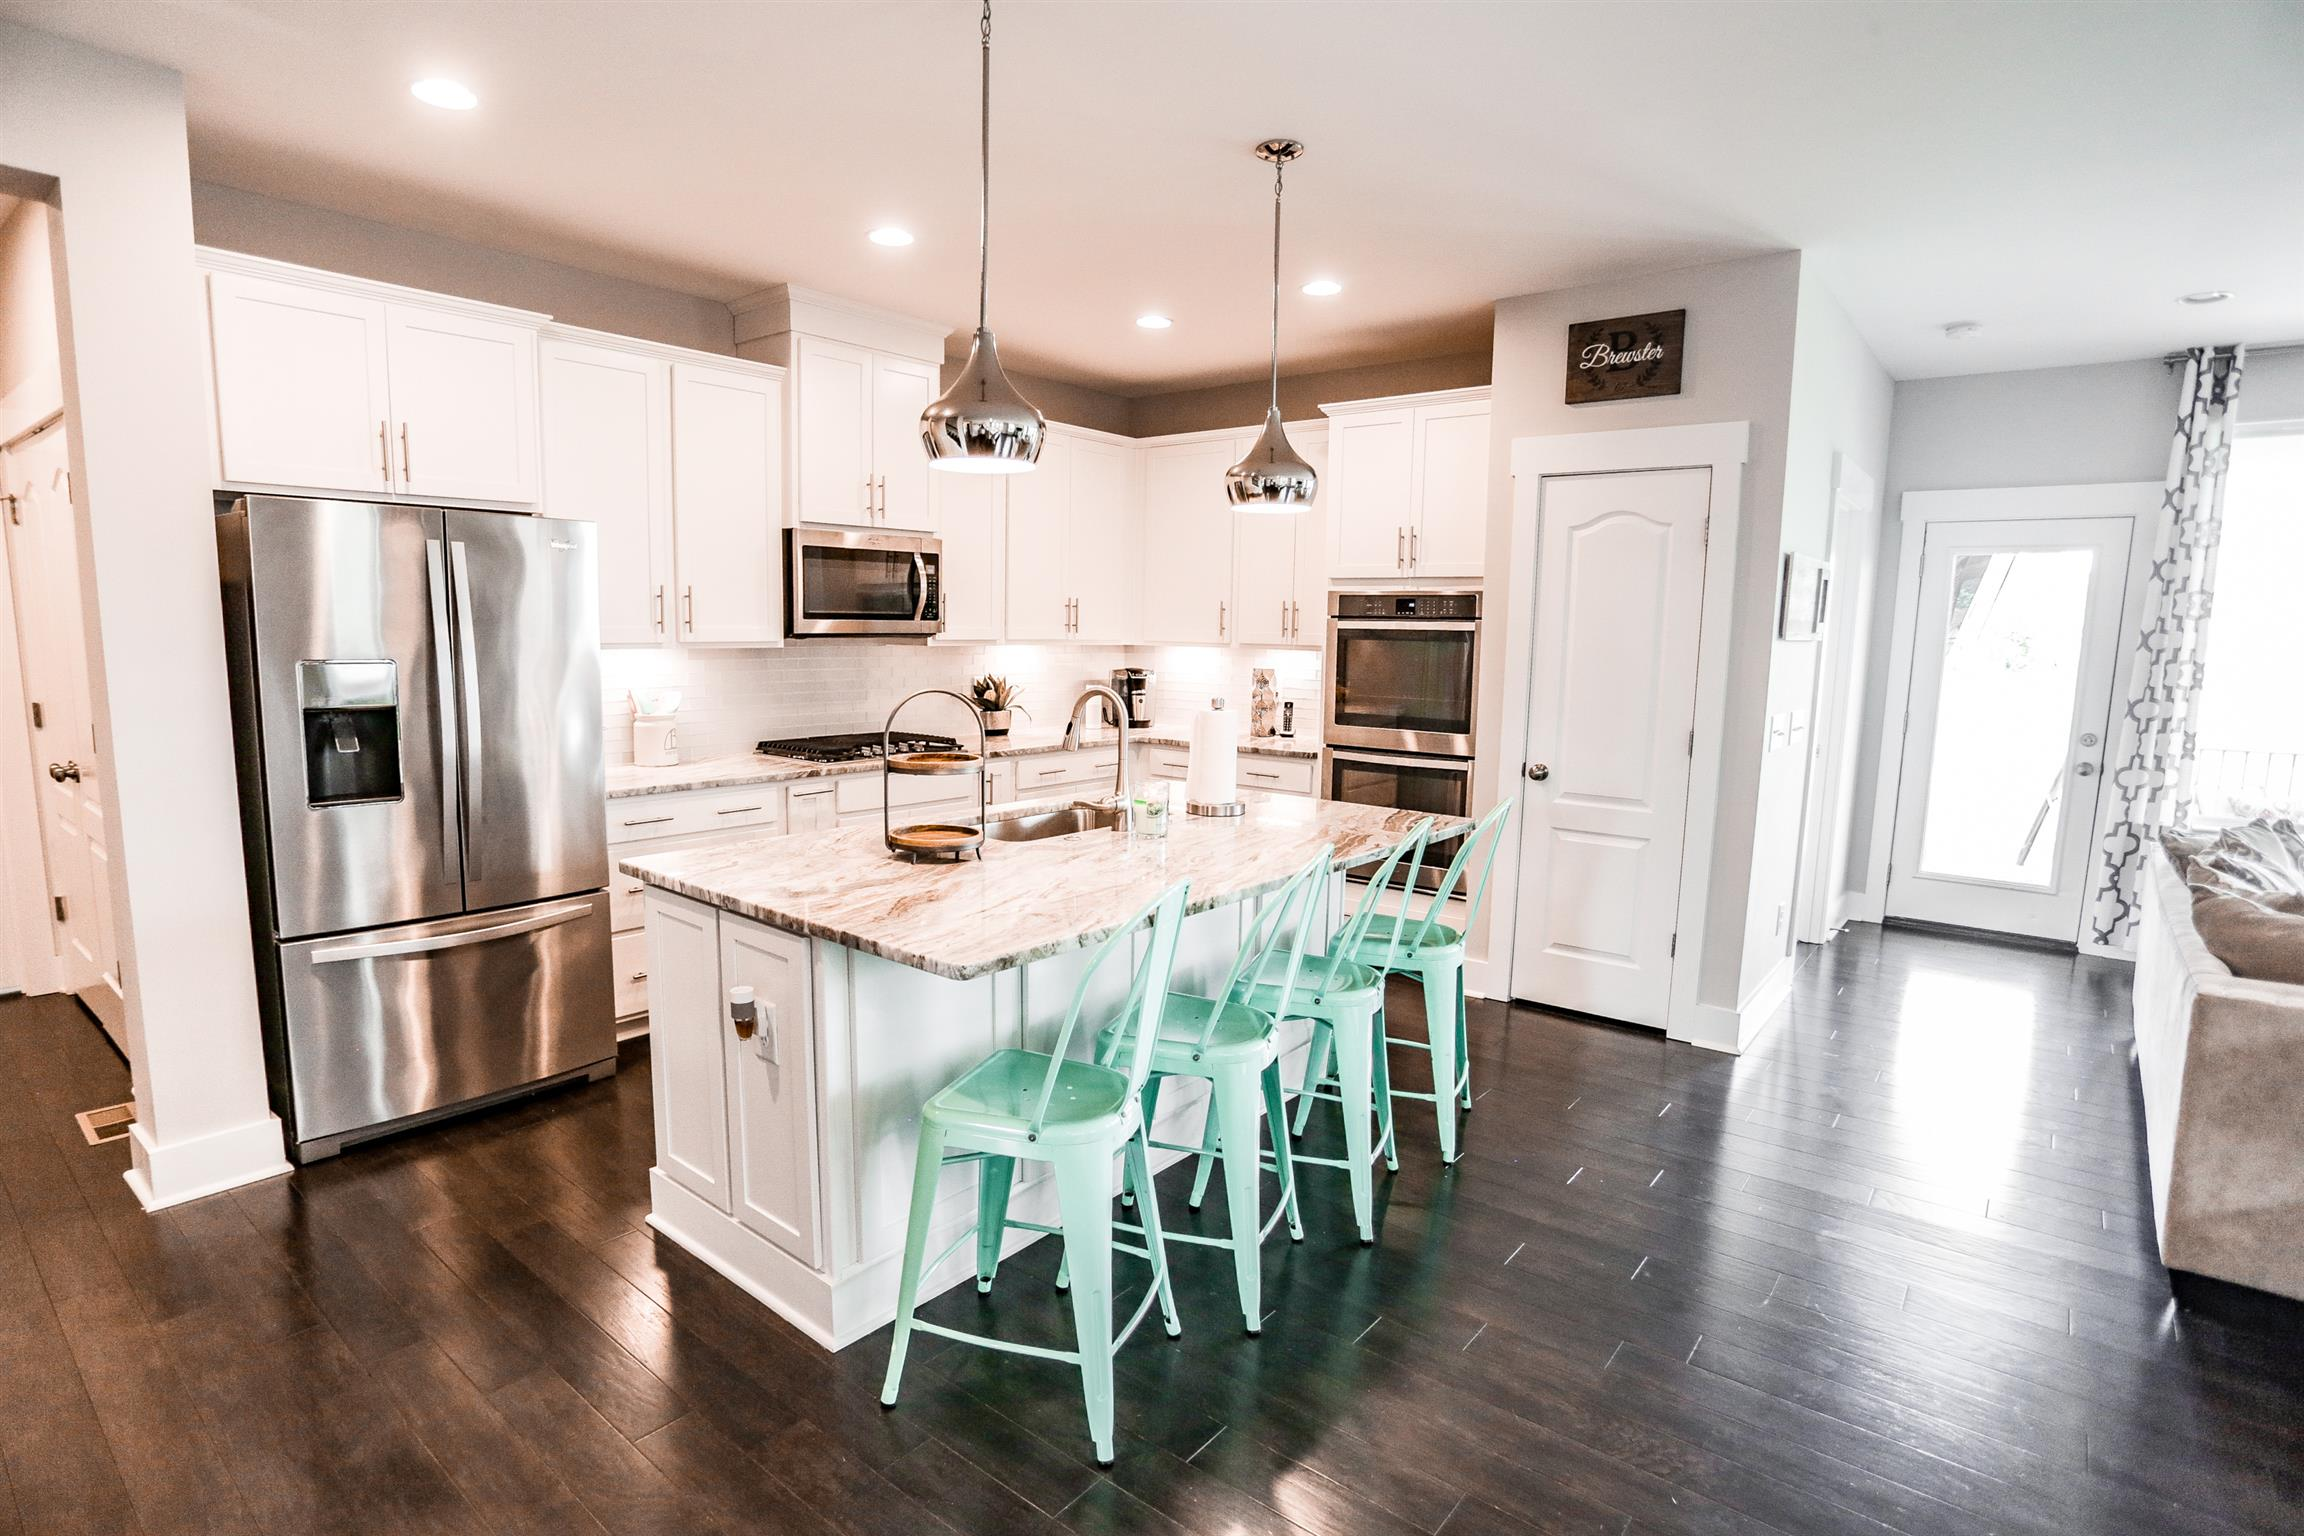 $499,900 - 5Br/3Ba -  for Sale in Beckwith Crossing Ph1, Mount Juliet